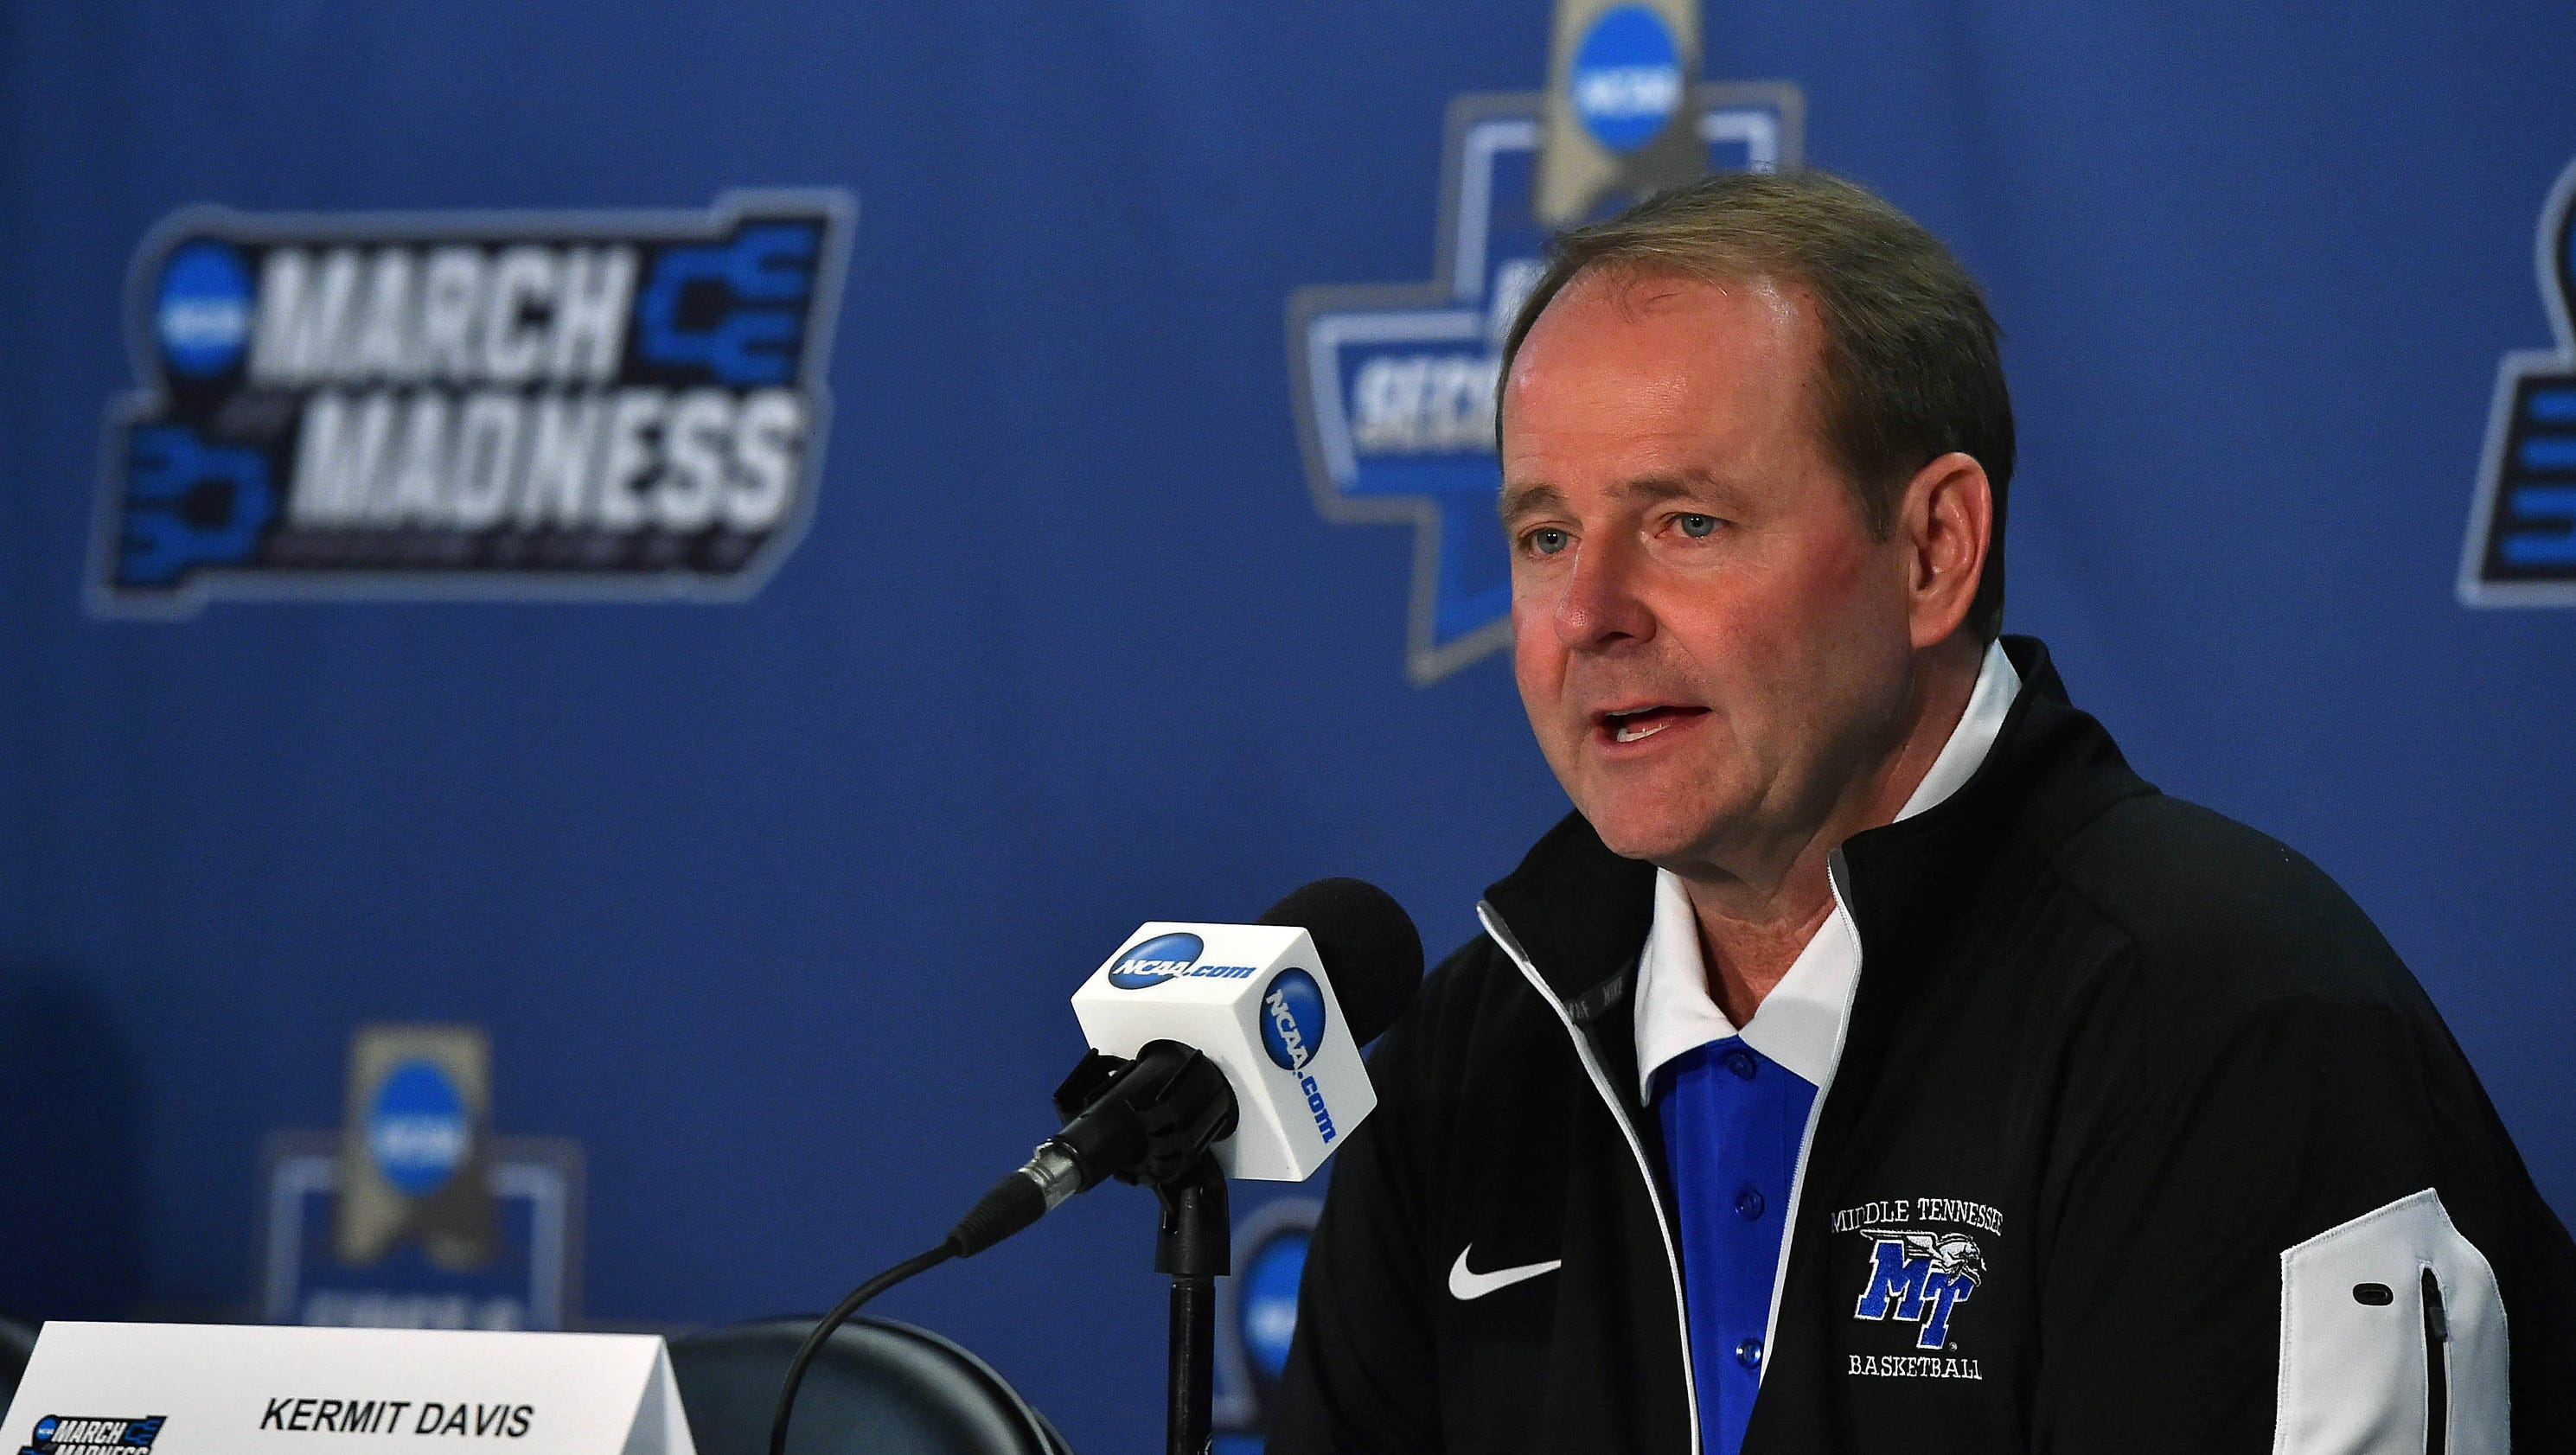 kermit davis new contract worth more than 500k